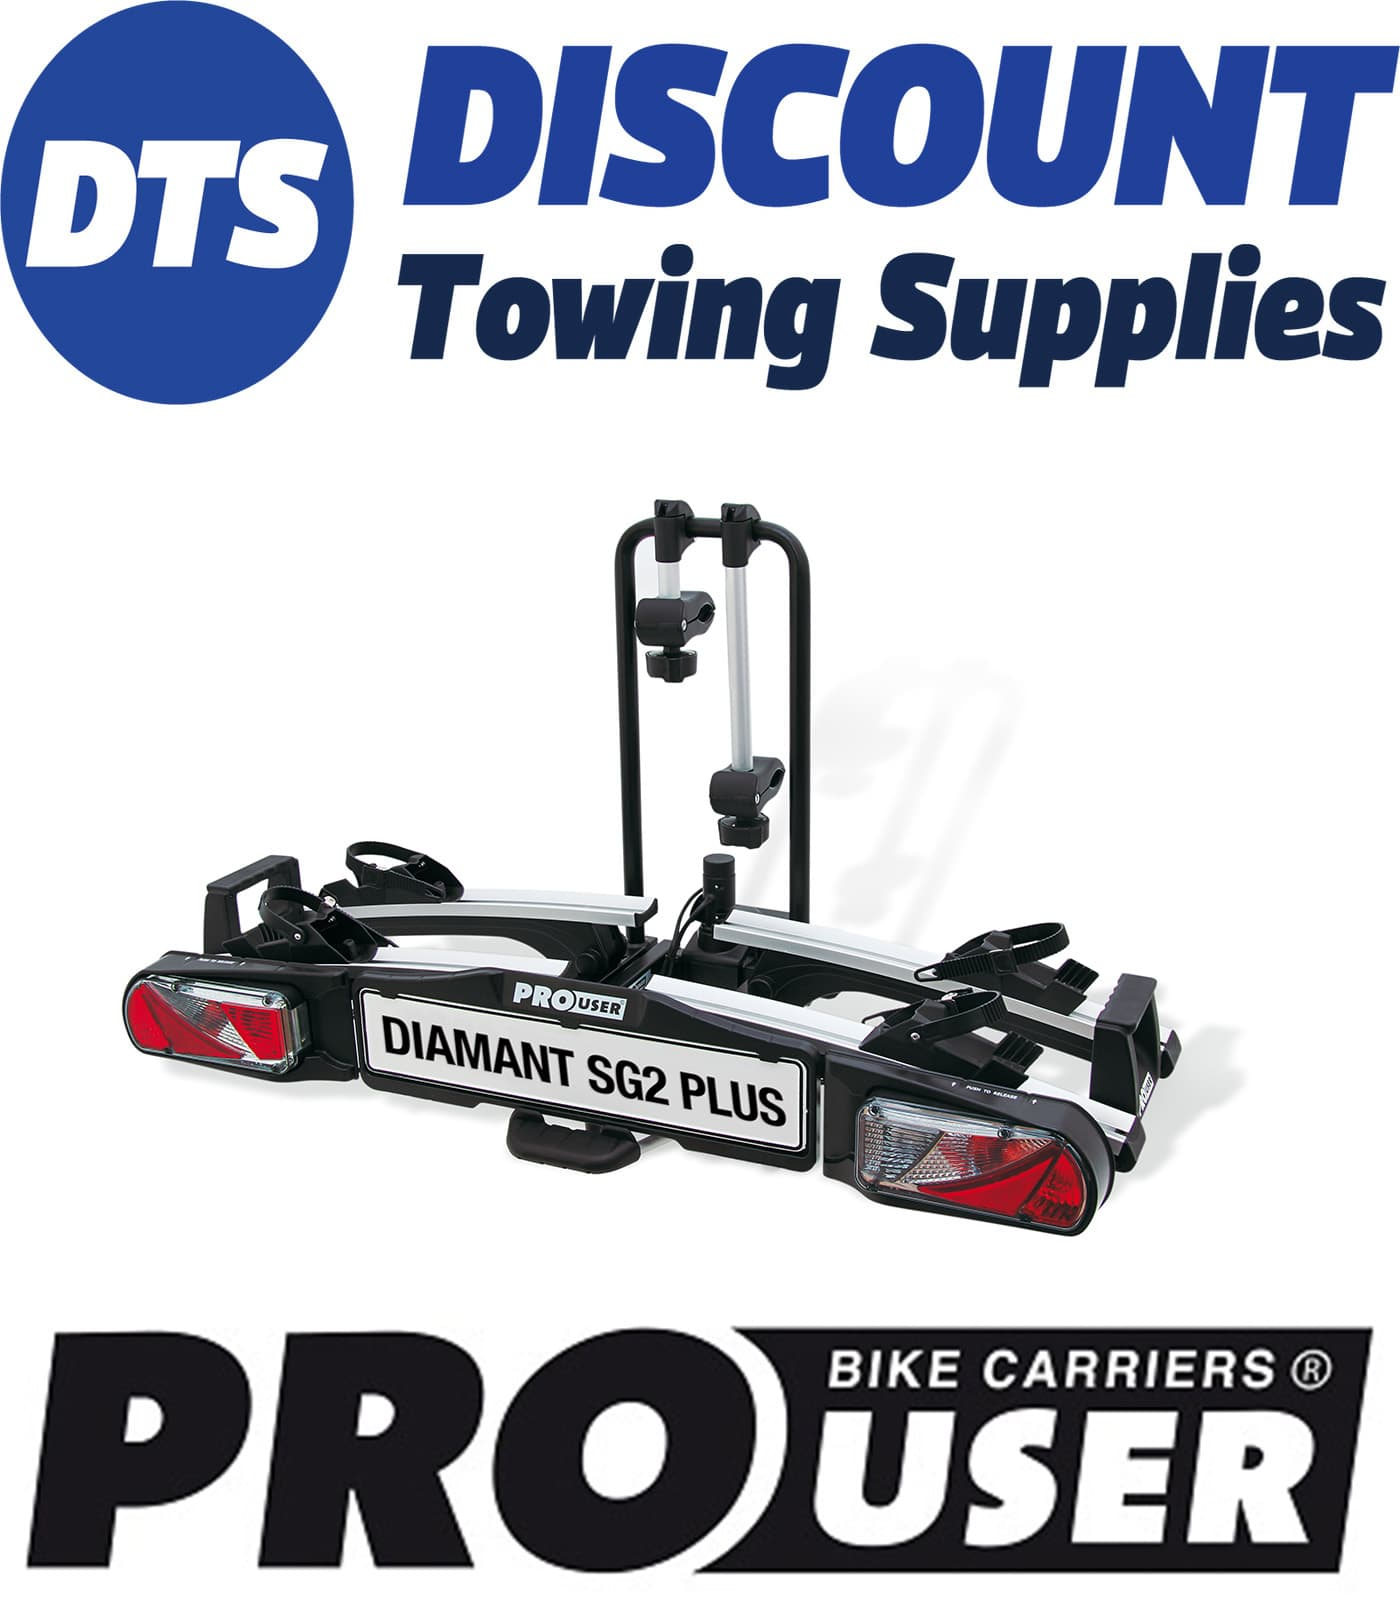 Pro User Details About Pro User Diamant Sg2 Plus 2 Bike Towball Mounted Cycle Carrier